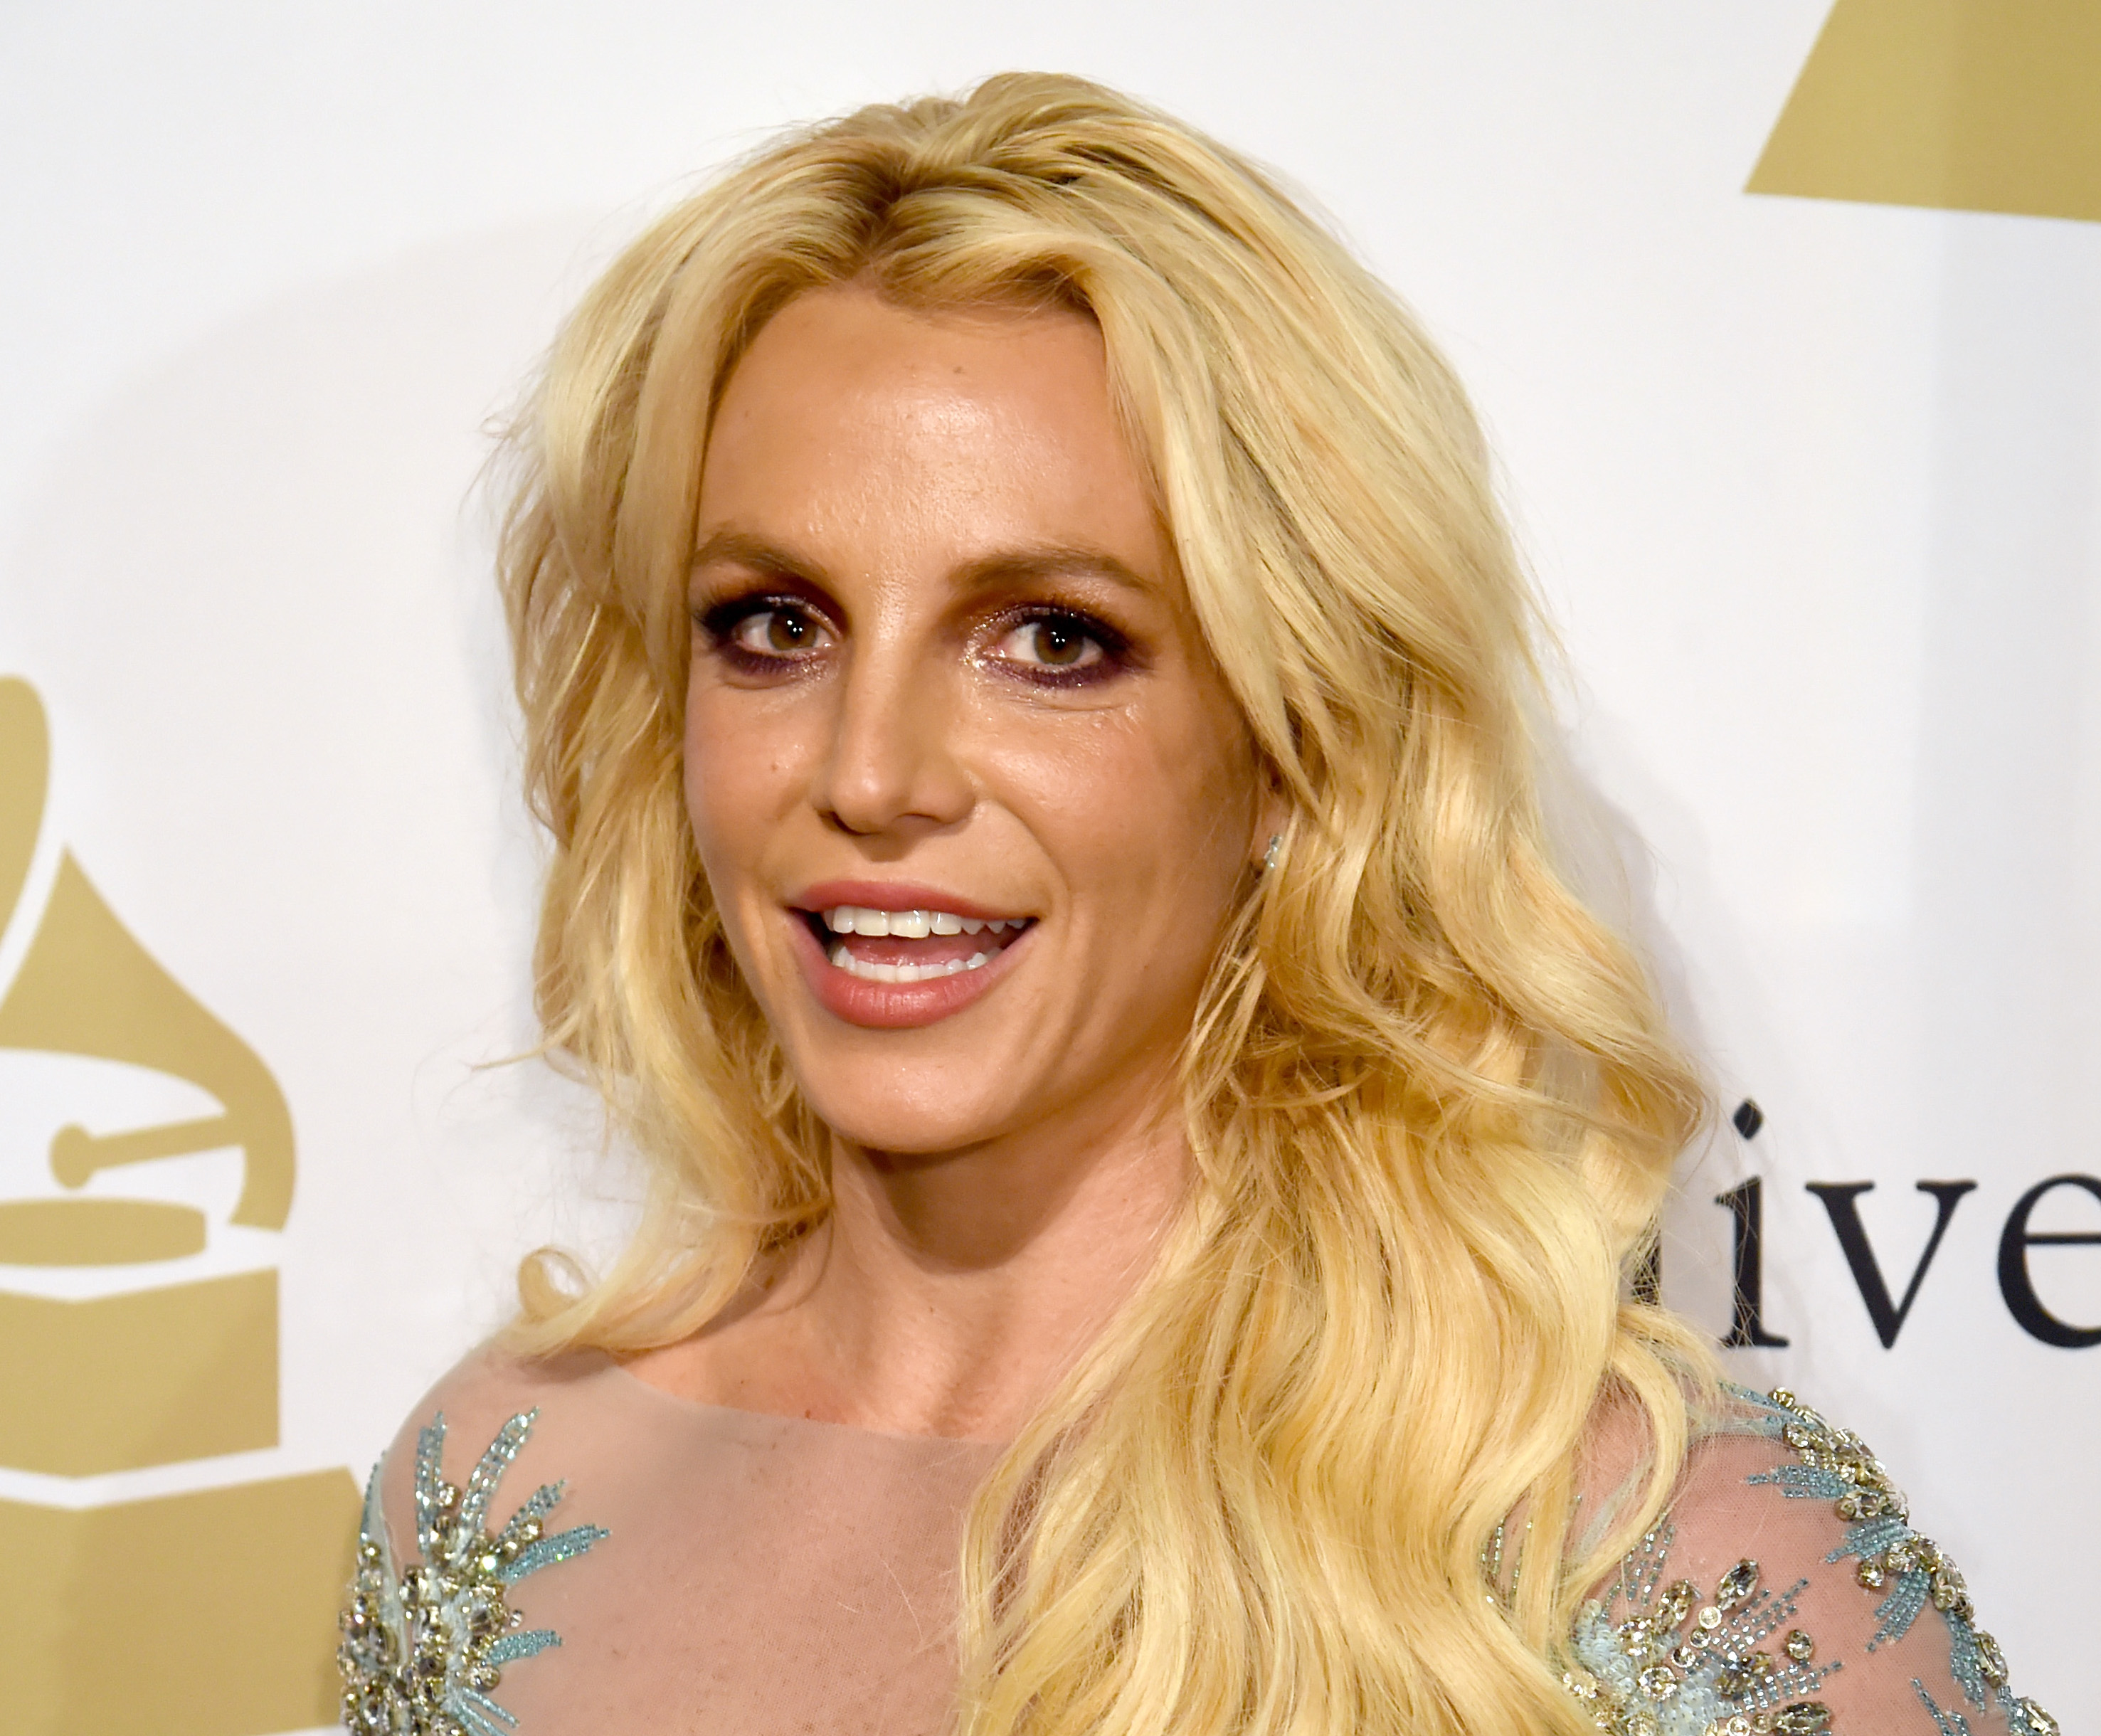 Britney Spears was almost attacked by a fan who rushed the stage, and the video is so stressful